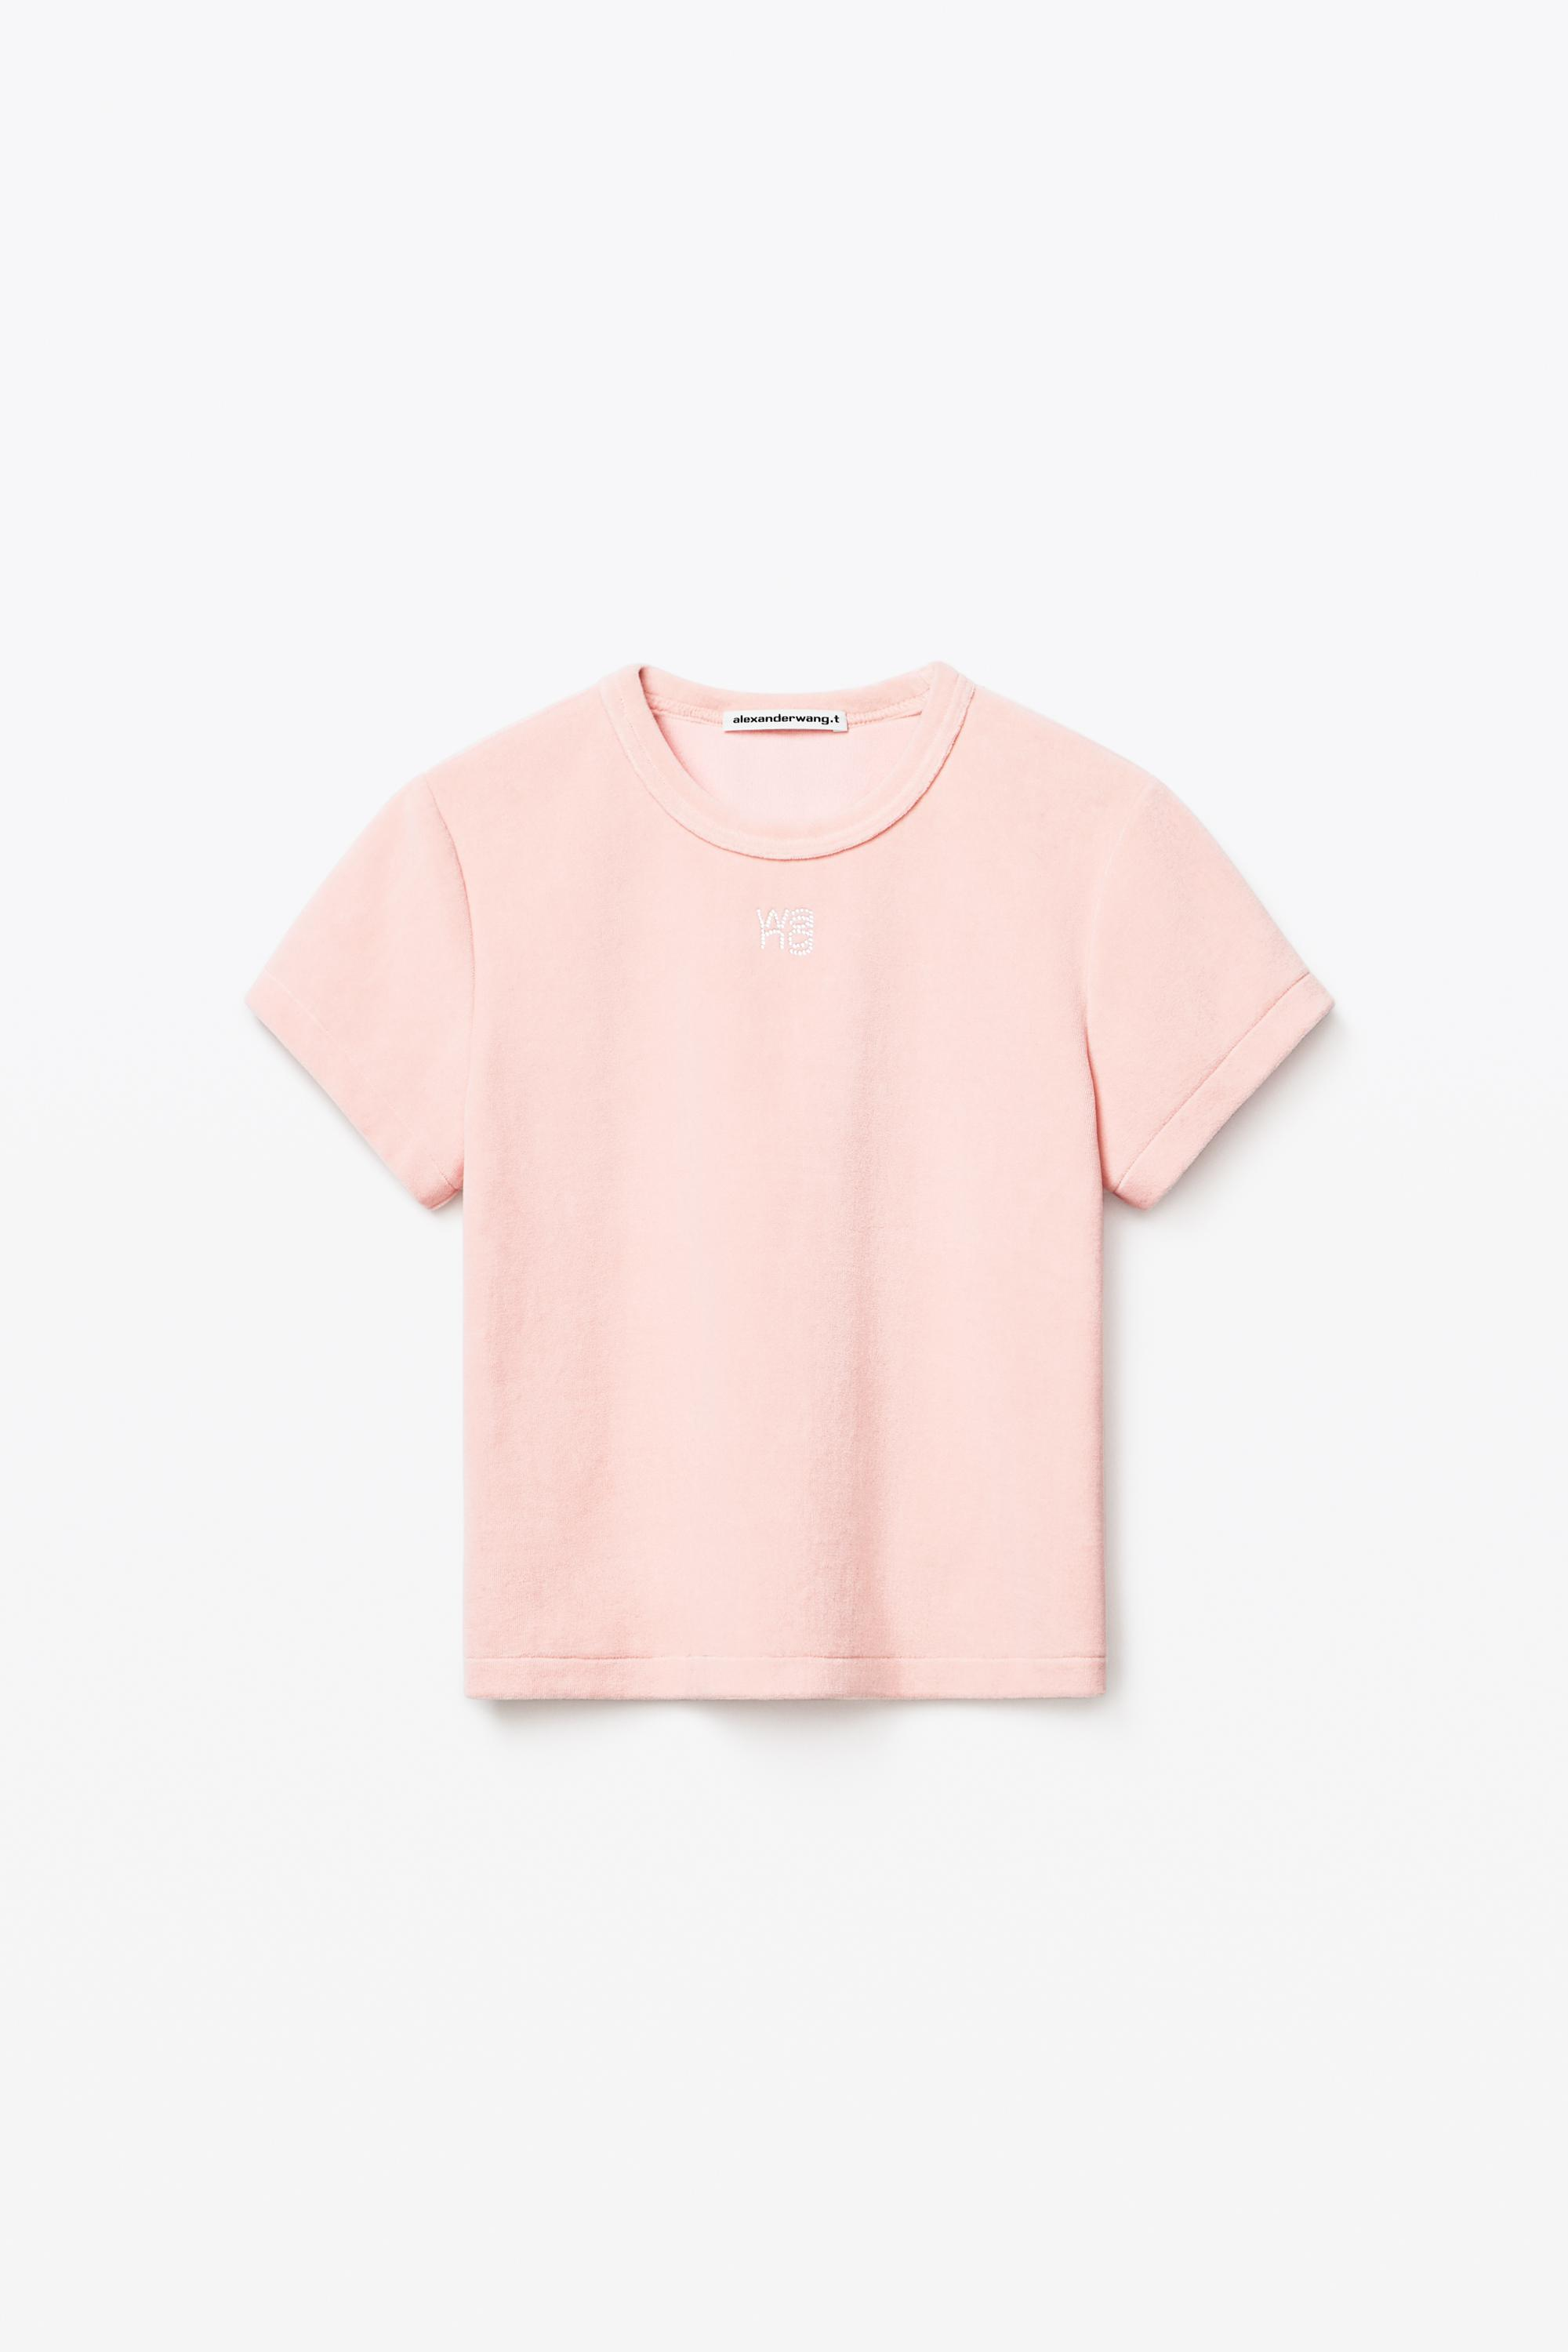 crystal logo baby tee in soft velour 1